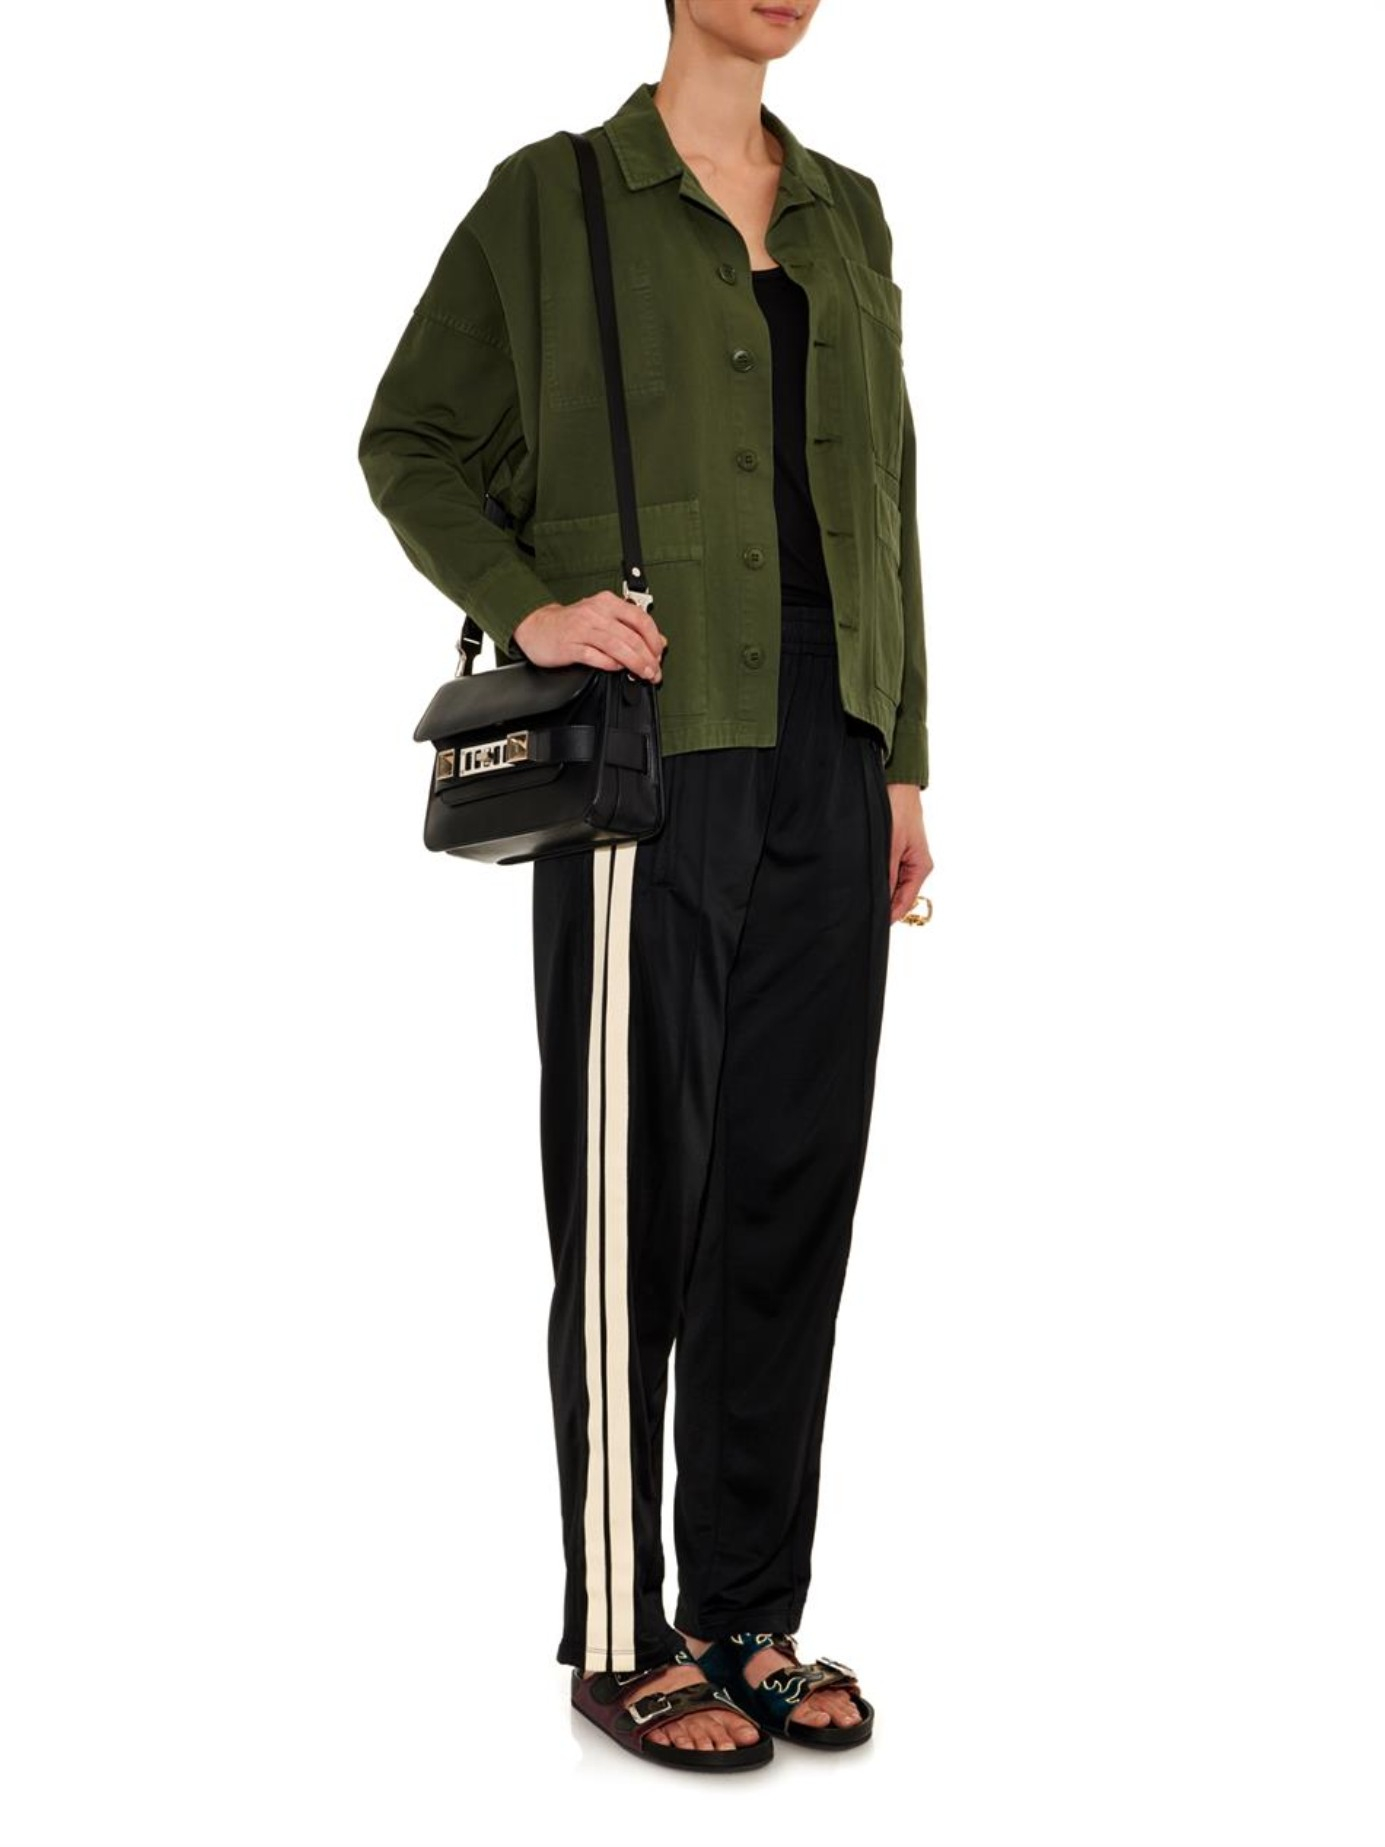 201 Toile Isabel Marant Patsy Relaxed Leg Trousers In Black